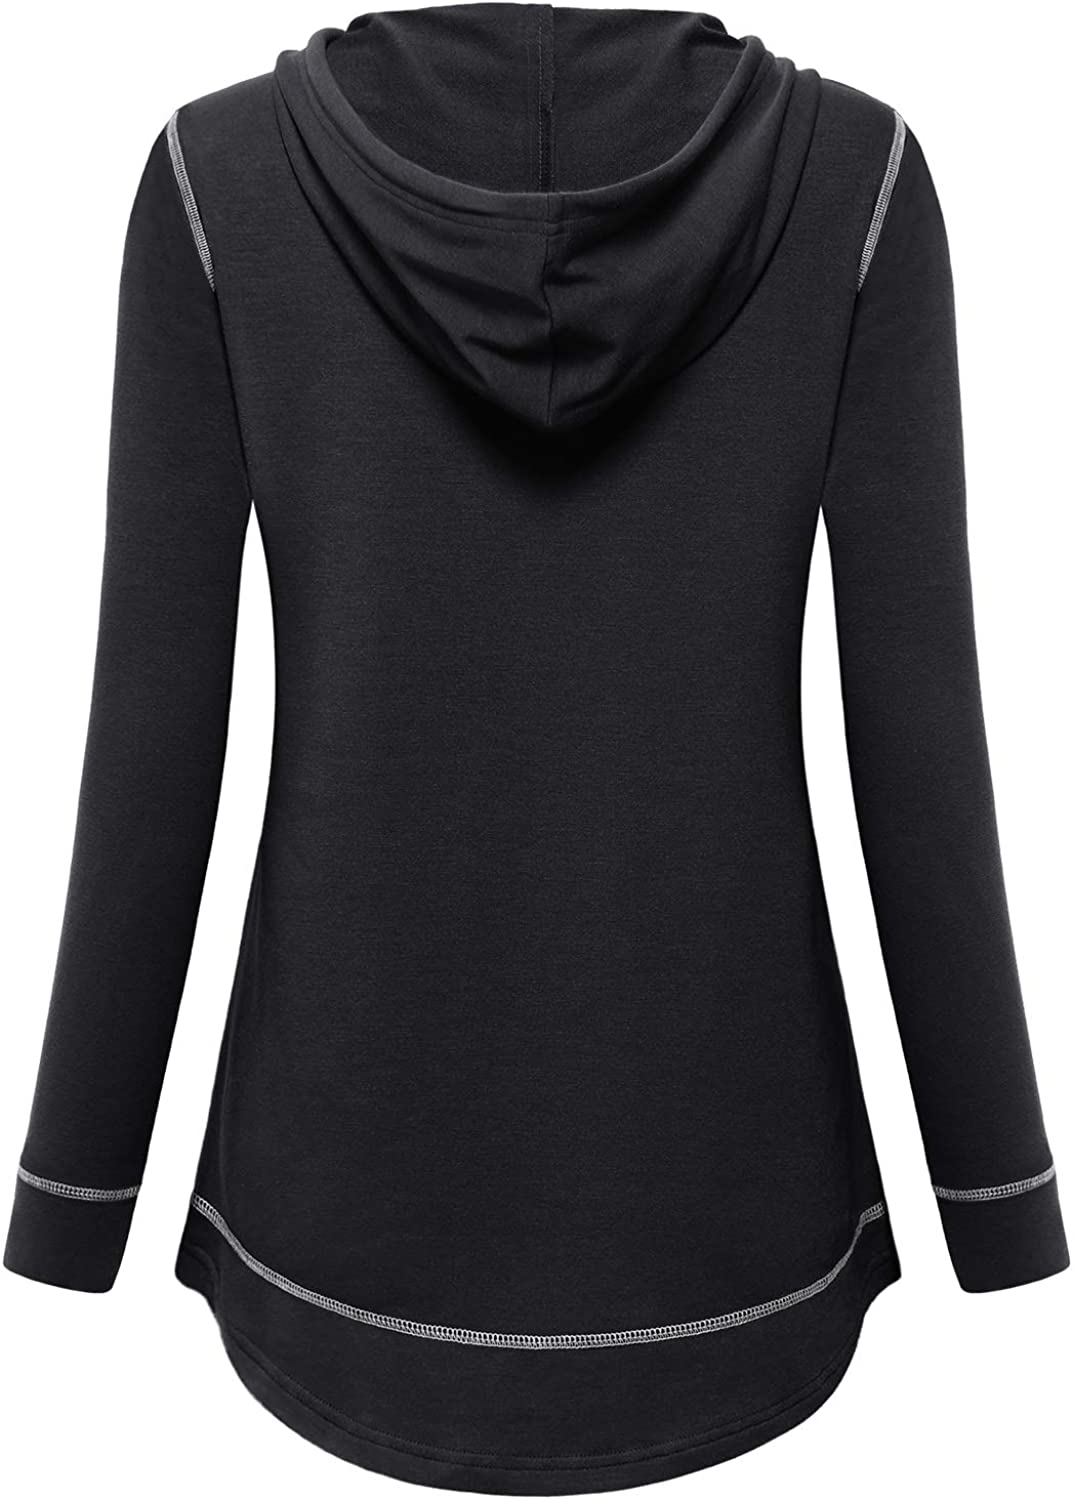 MOQIVGI Womens Long Sleeve Lightweight Activewear Casual Running Yoga Workout Hooded Tops